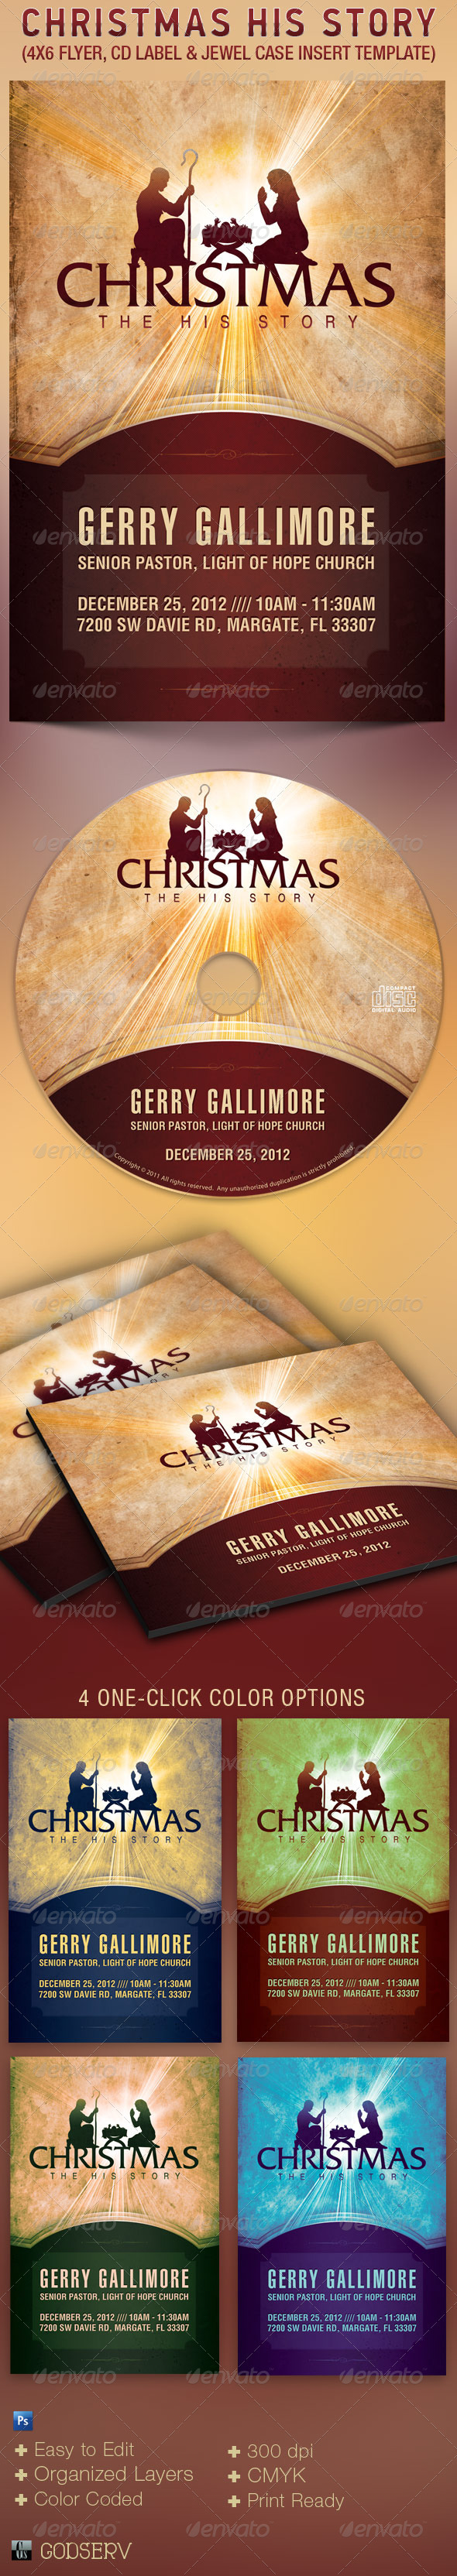 Christmas His Story Flyer and CD Template - Church Flyers